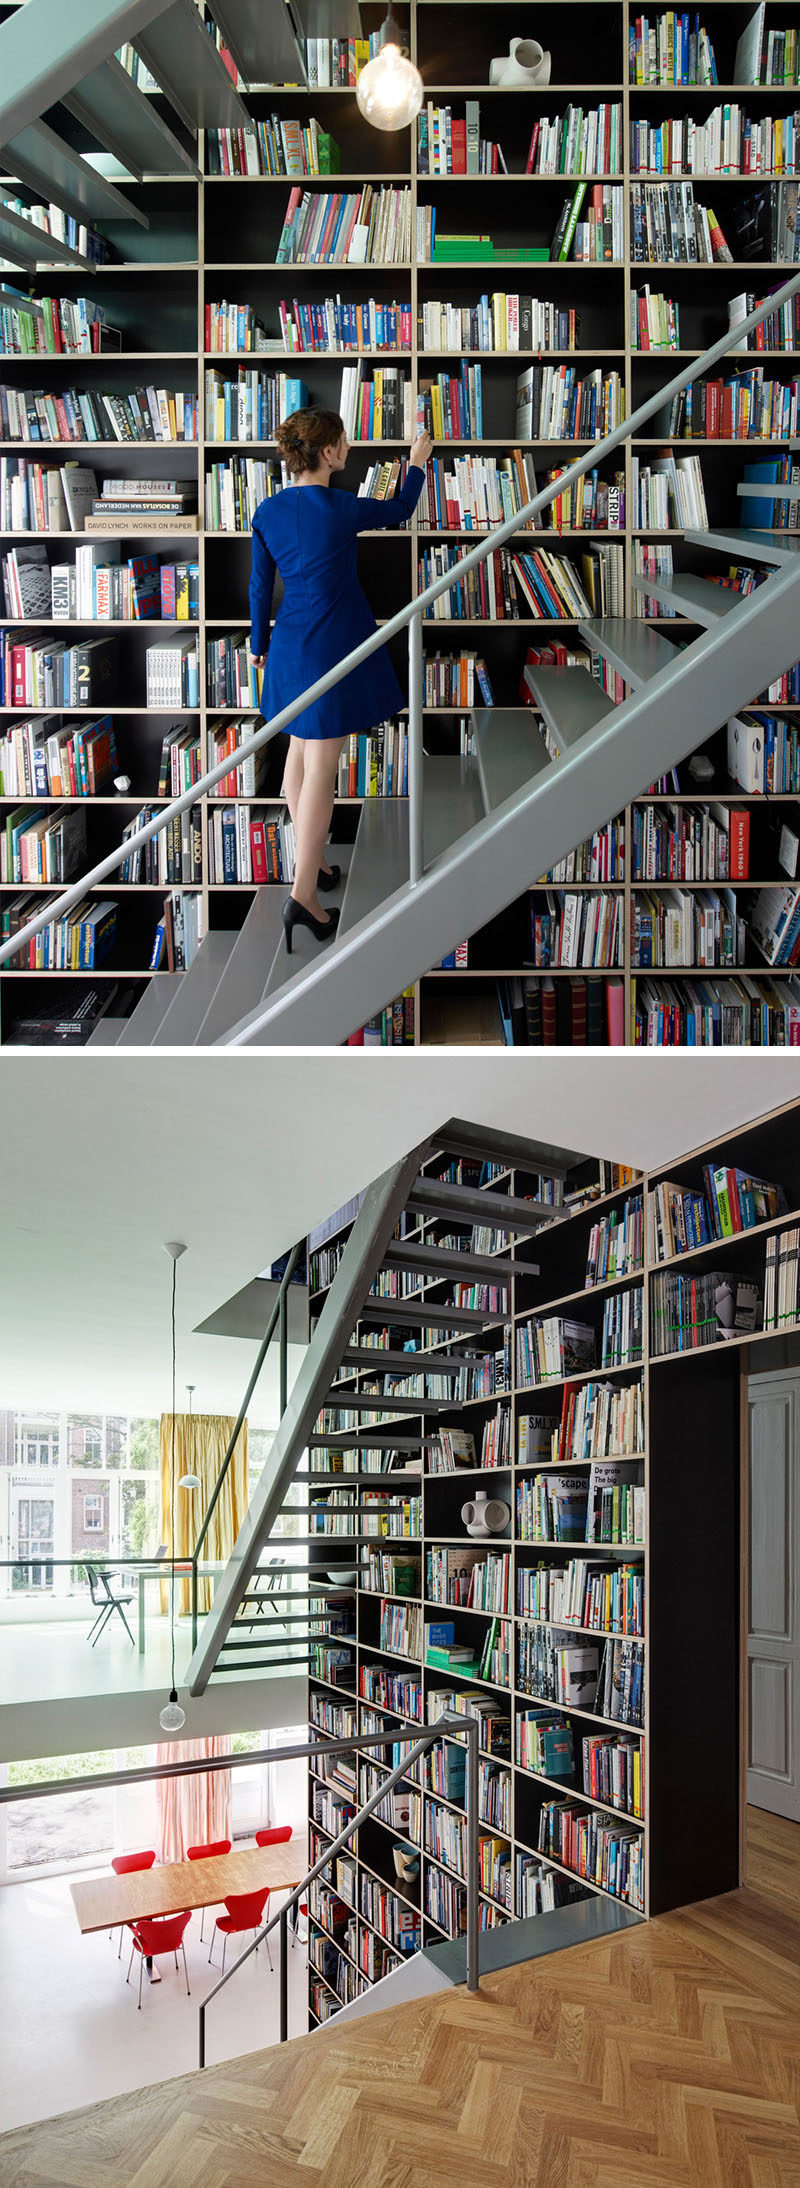 12 Examples Of Staircases With Bookshelves // This bookshelf along side the staircase is as tall as the entire apartment it's in.